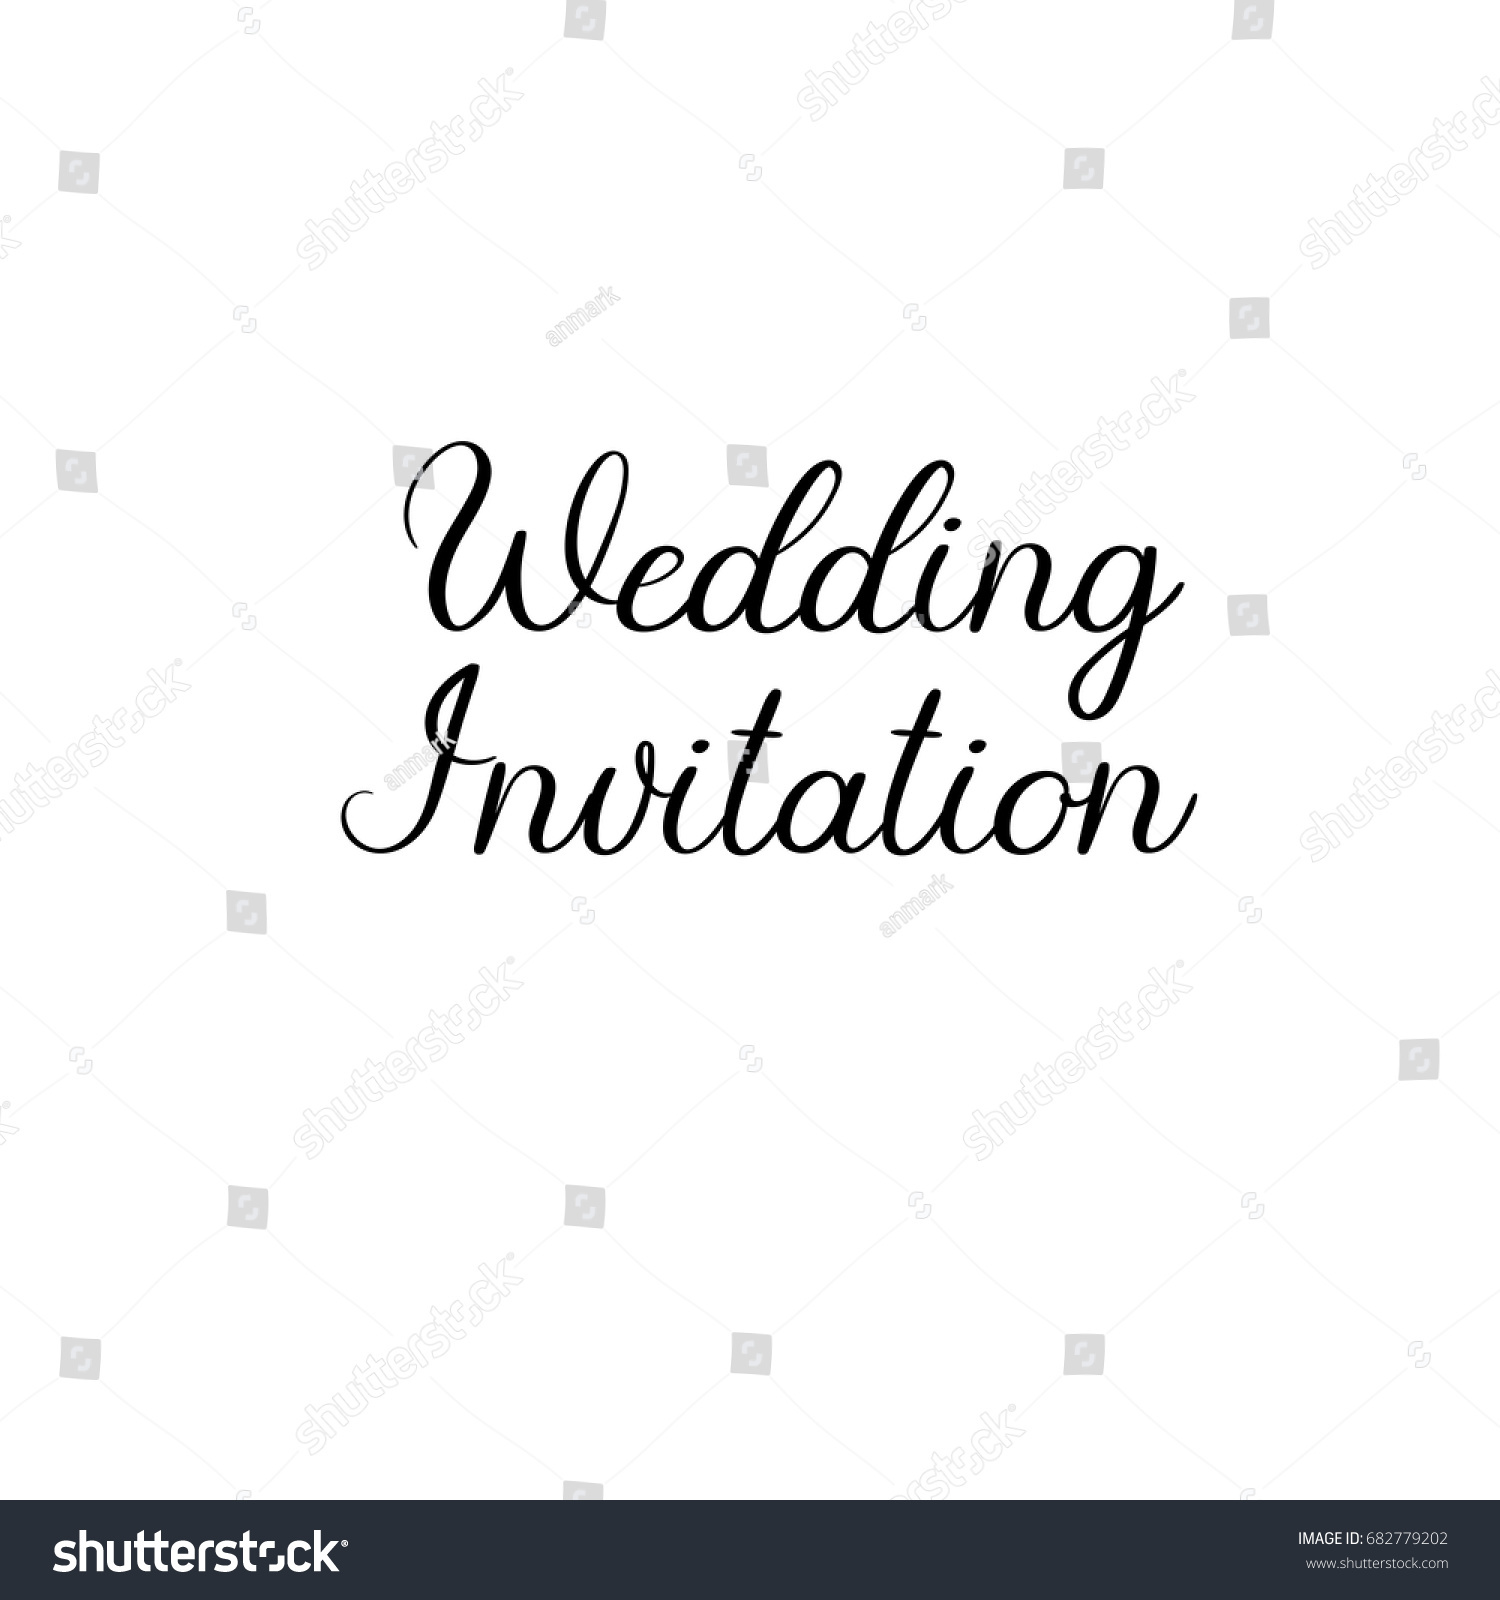 Wedding Invitation Handwritten Text Vector Brush Stock Vector HD ...